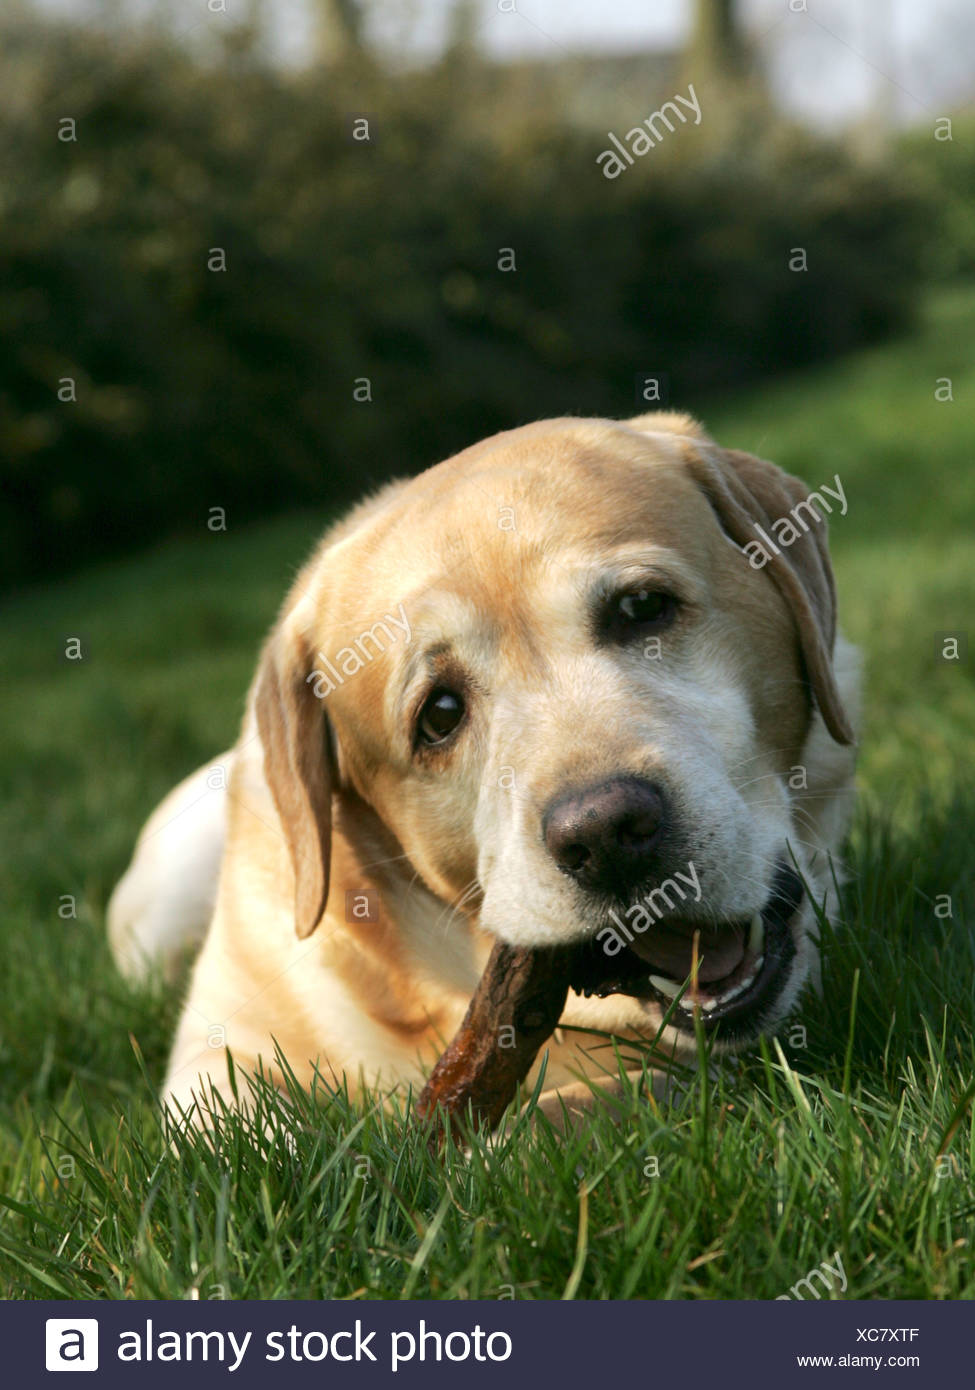 A golden labrador chewing on a stick. - Stock Image